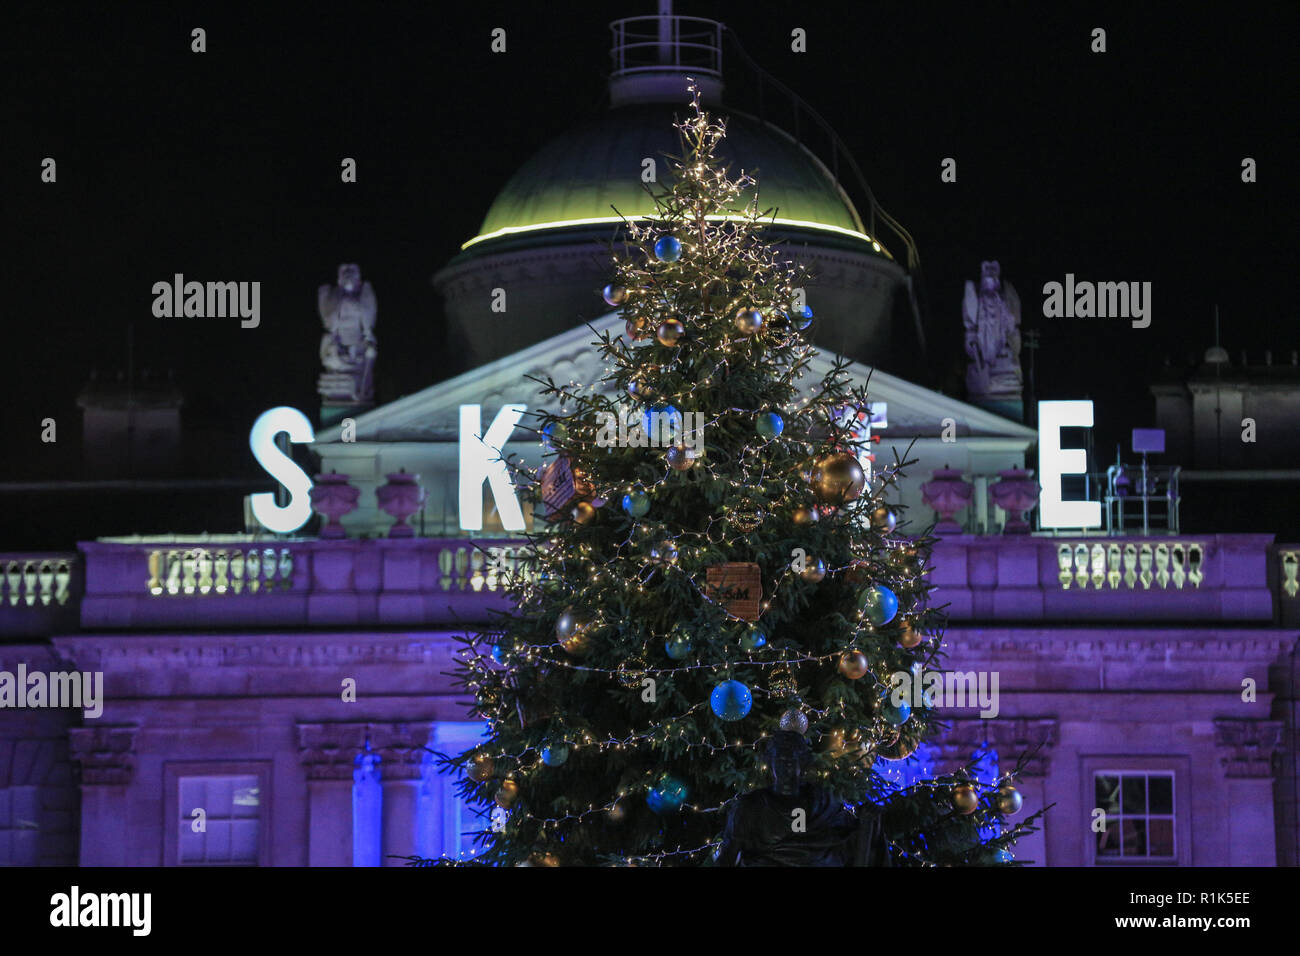 Somerset House, London, UK, 13th Nov 2018. Celebrity arrivals. Skate at Somerset House with Fortnum & Mason opens with an official launch party, as the popular ice rink returns within the historic setting of Somerset House for the ice skating sesason. The ice rink is open to the public from 14th Nov. Credit: Imageplotter News and Sports/Alamy Live News Stock Photo